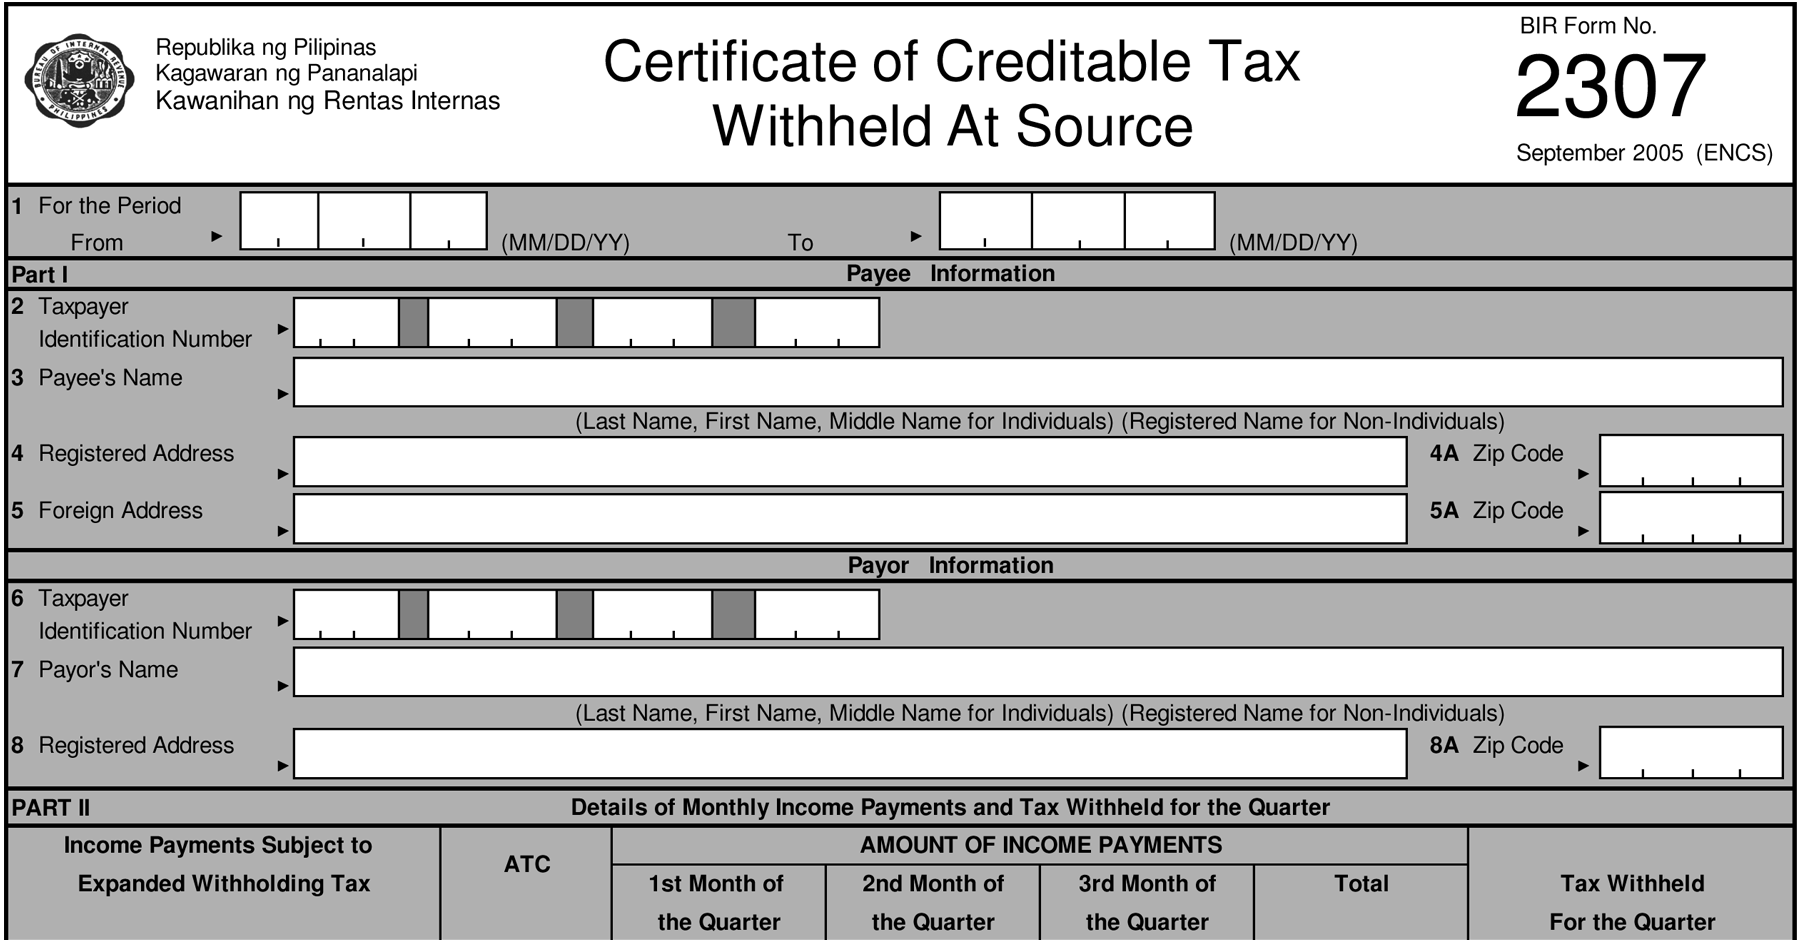 How to Generate BIR Form 2307 | Form 2306